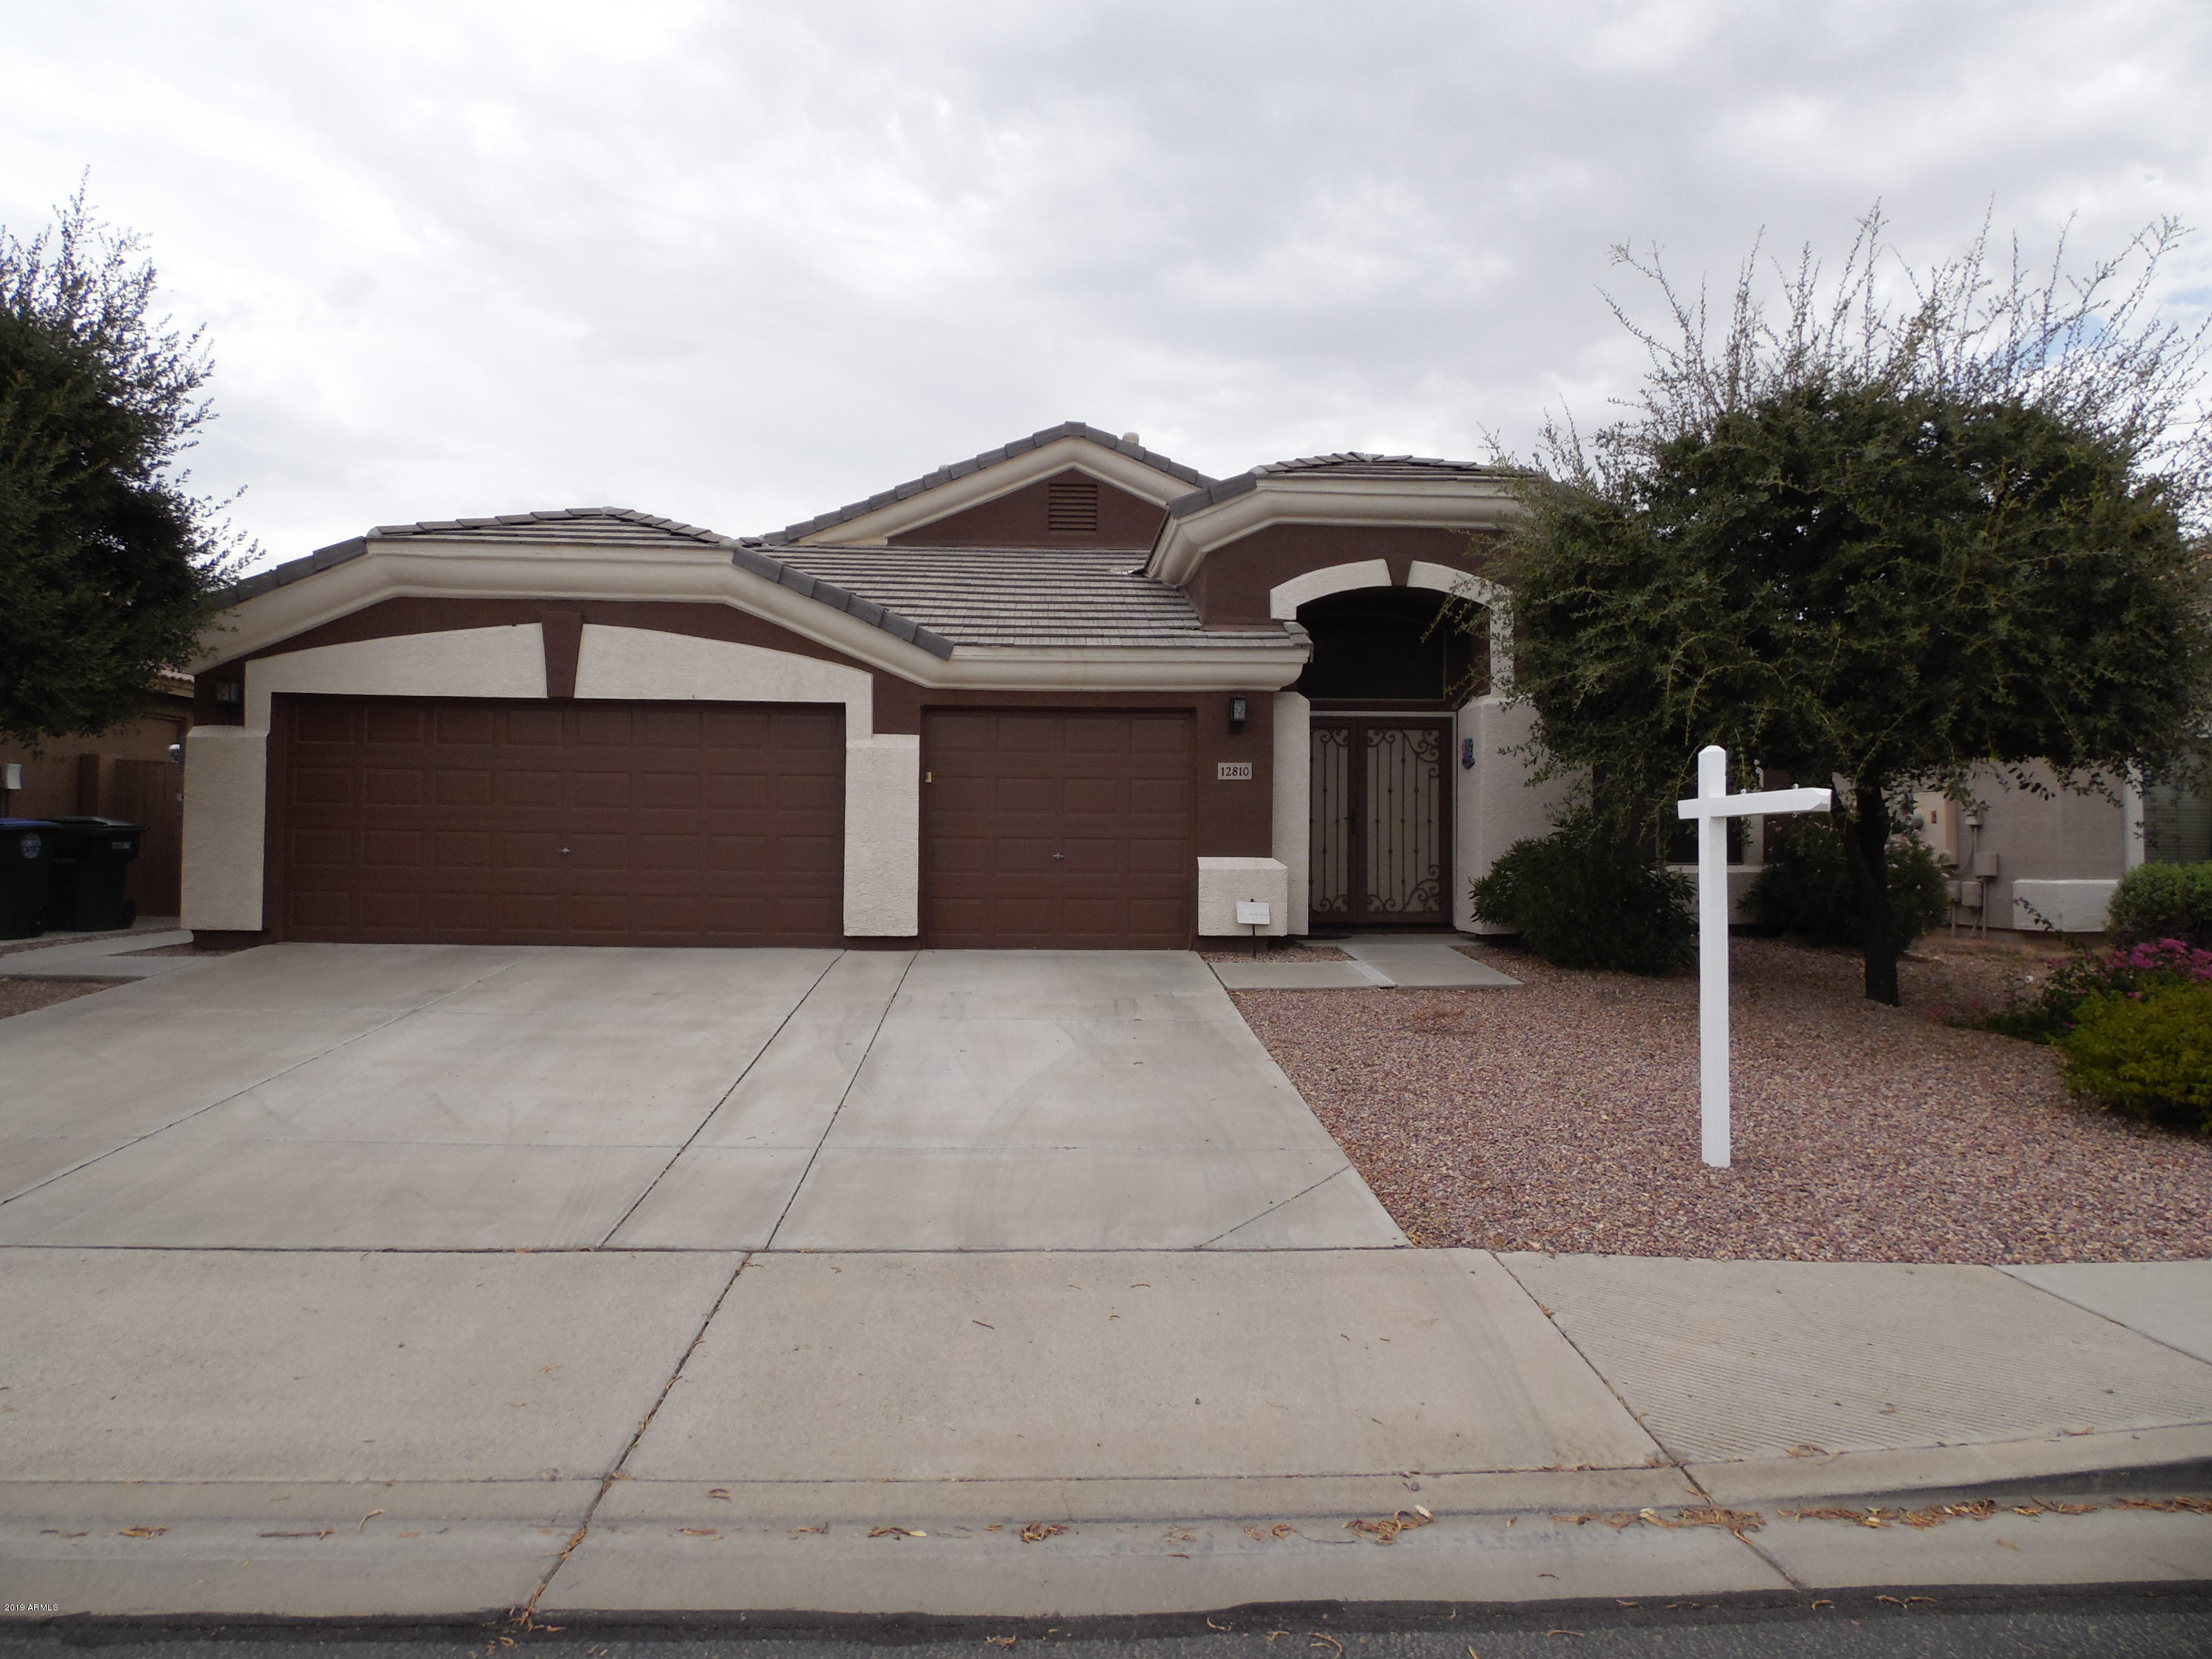 MLS 5963286 12810 W ASTER Drive, El Mirage, AZ 85335 El Mirage AZ Eco-Friendly